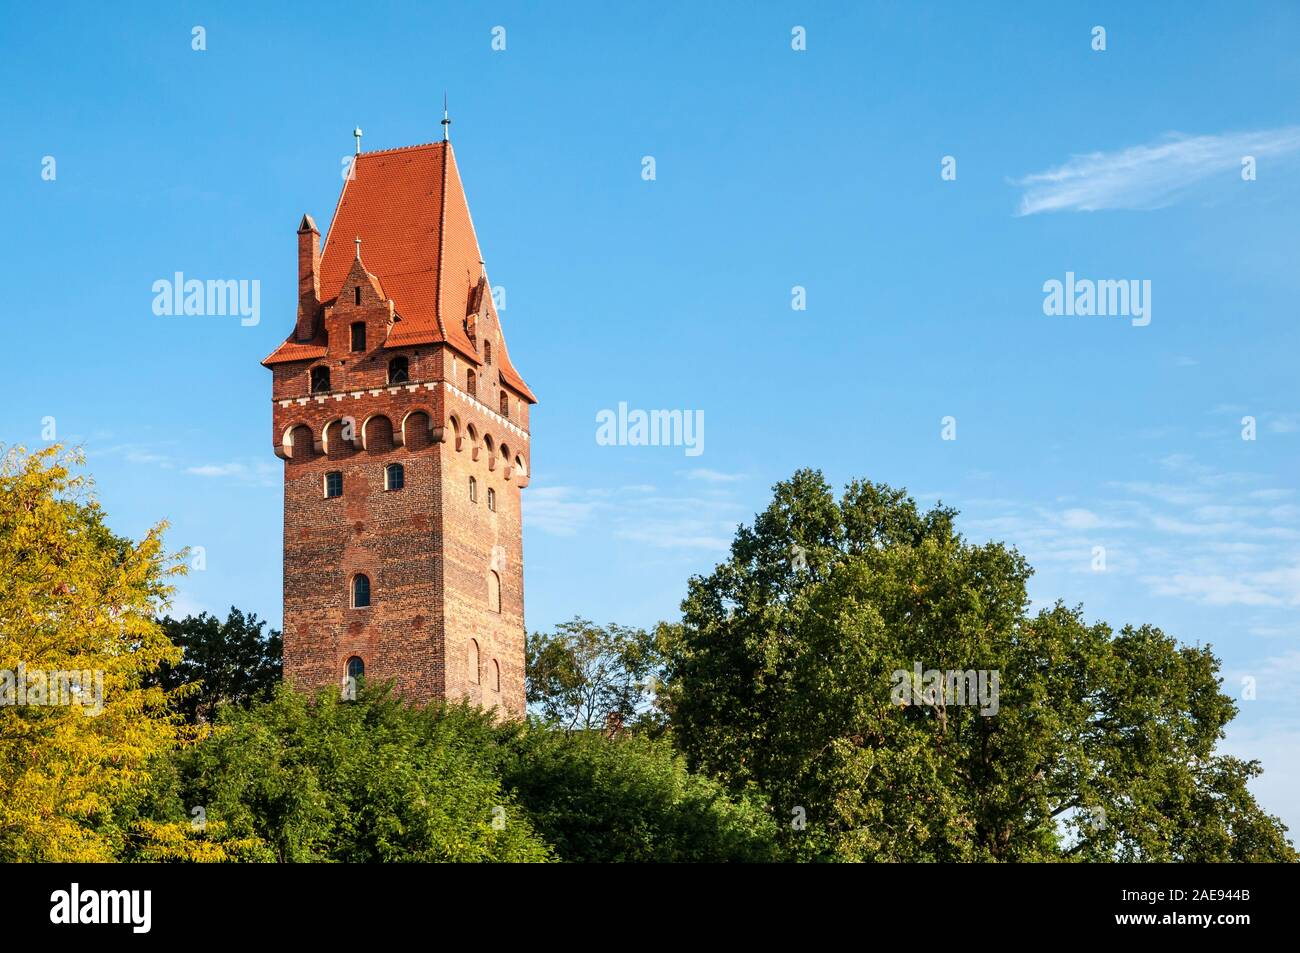 Burg Tangermuende Castle, Kapitelturm, defence tower, town of Tangermuende, along the Elbe Cycle Route, Germany Stock Photo